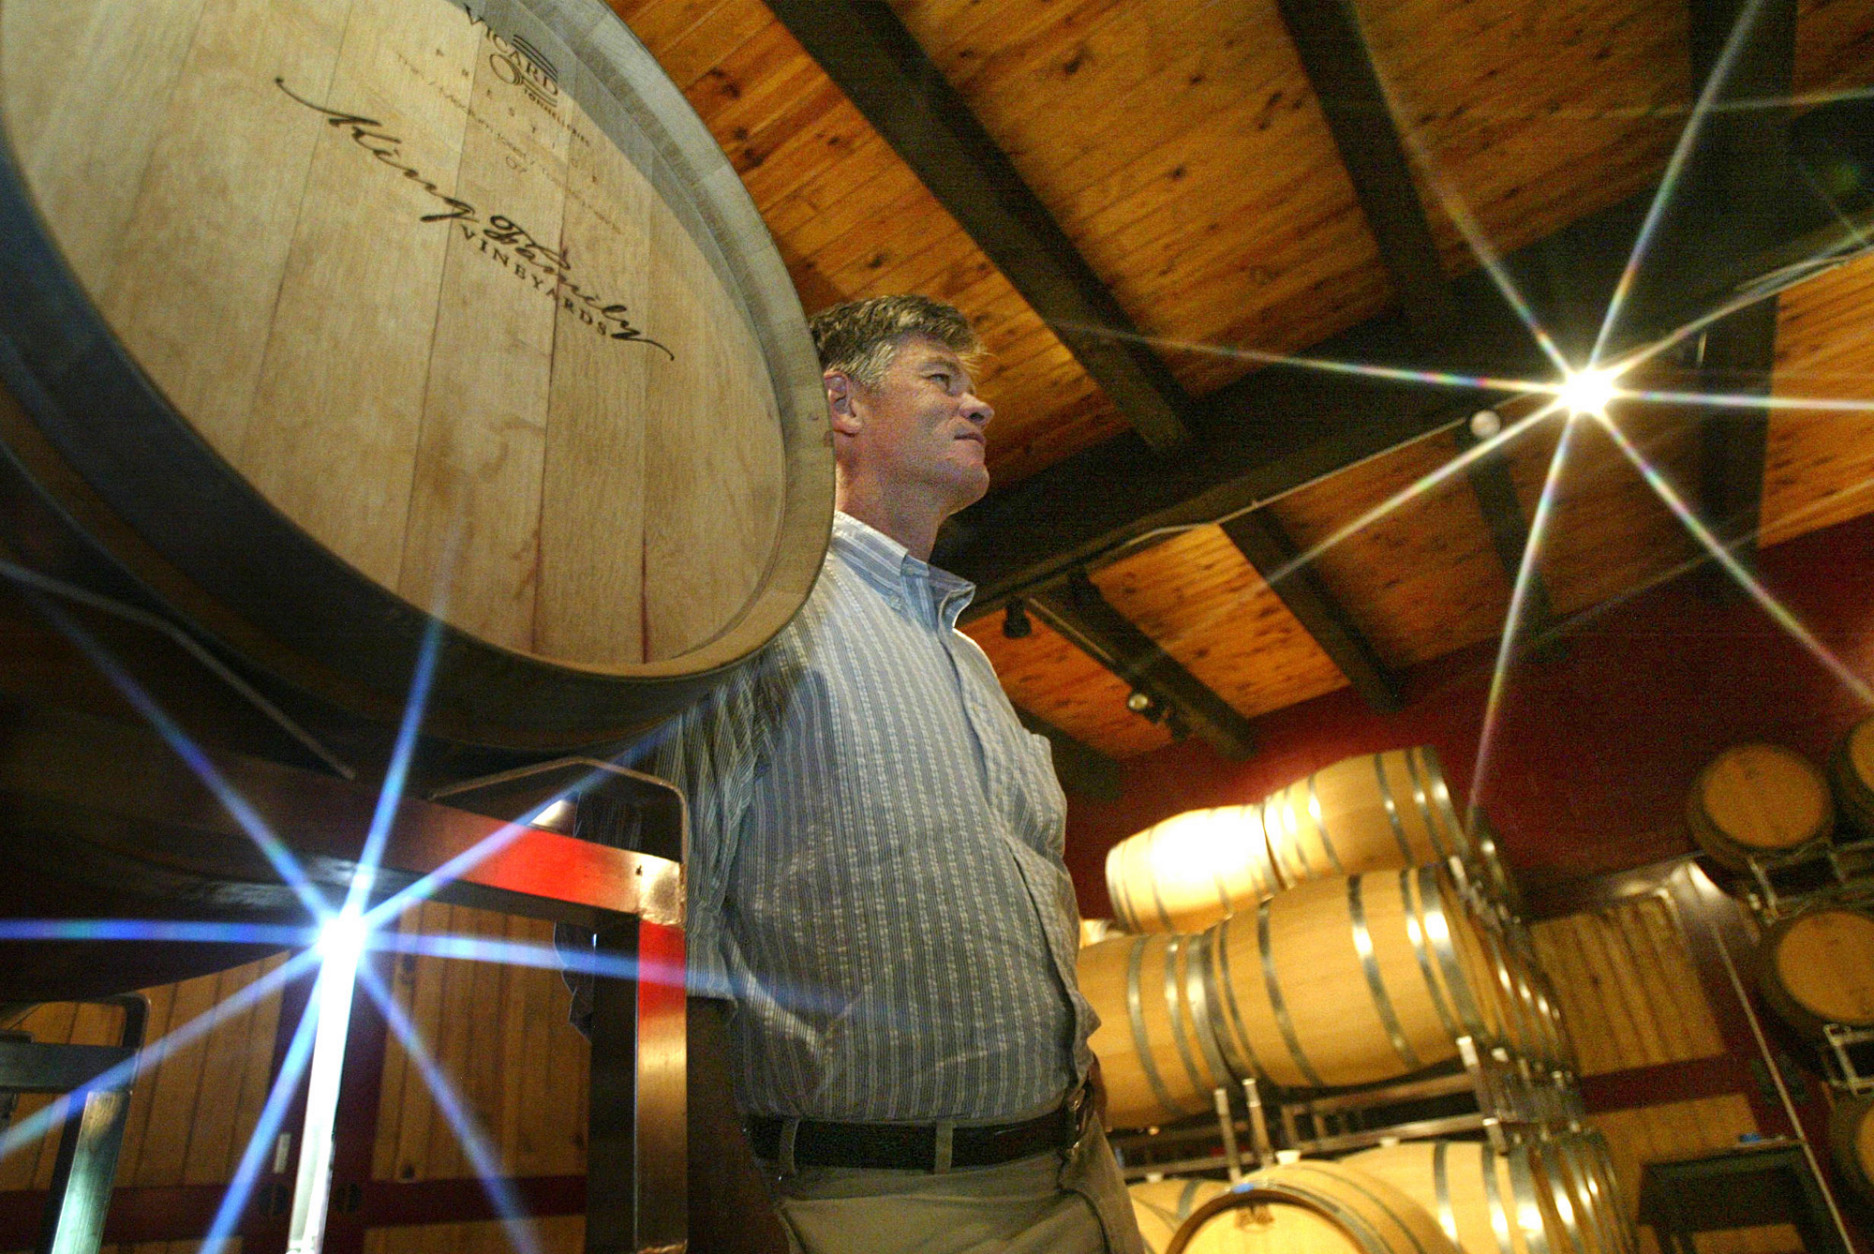 David King, owner of the King Family Vineyards and board chairman of the state-run Virginia Wine Distribution Co., is seen in his barrel room on Wednesday, May 7, 2008, in Crozet, Va. The nonprofit distribution company retains the three-tier system used by a majority of states following the repeal of Prohibition in 1933 that takes the wine from the winery to the wholesaler to the retailer. (AP Photo/Lisa Billings)